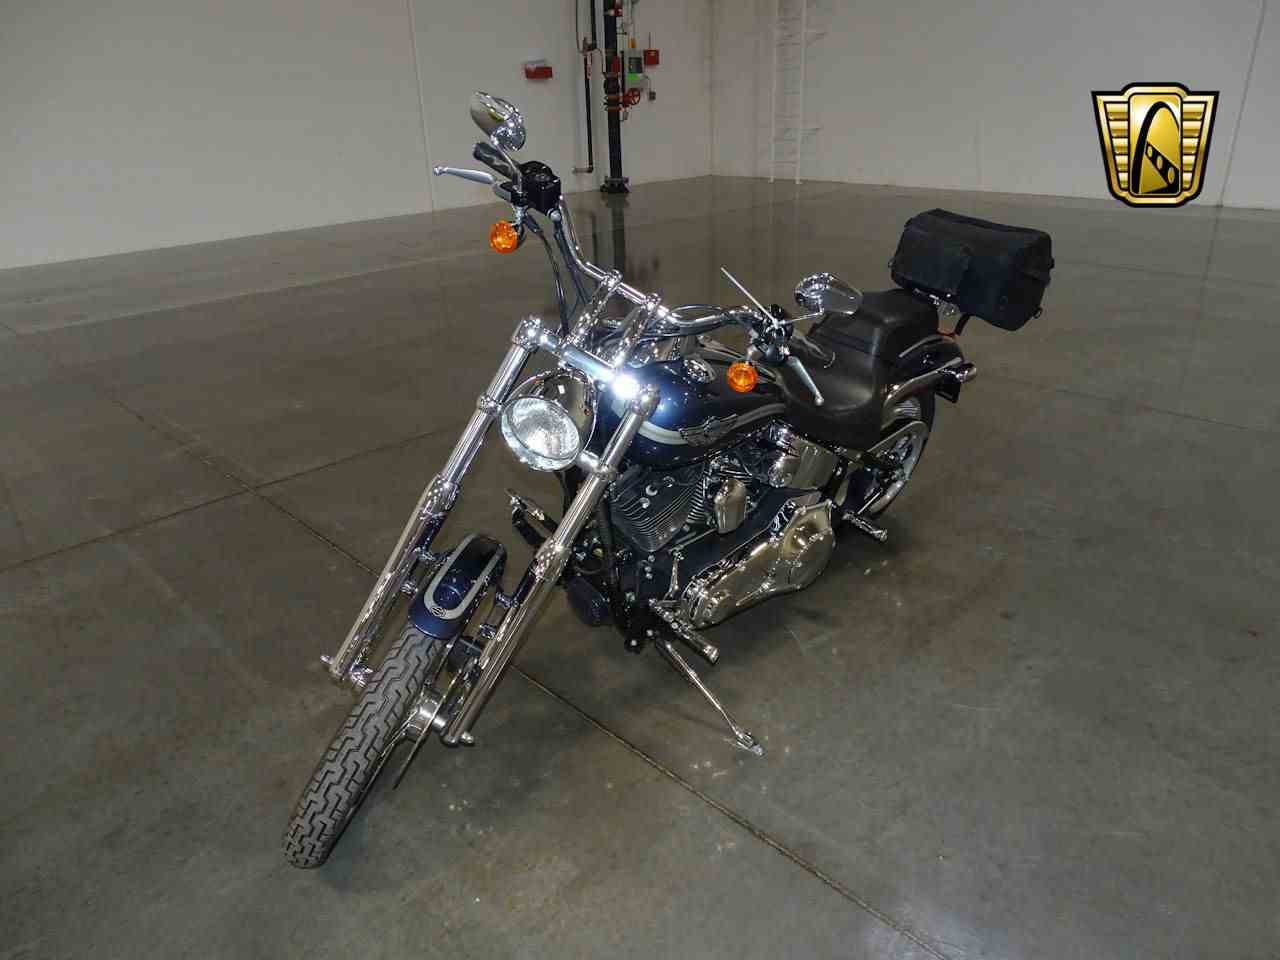 Large Picture of 2003 Harley-Davidson FXSTDI located in Arizona Offered by Gateway Classic Cars - Scottsdale - MA4S